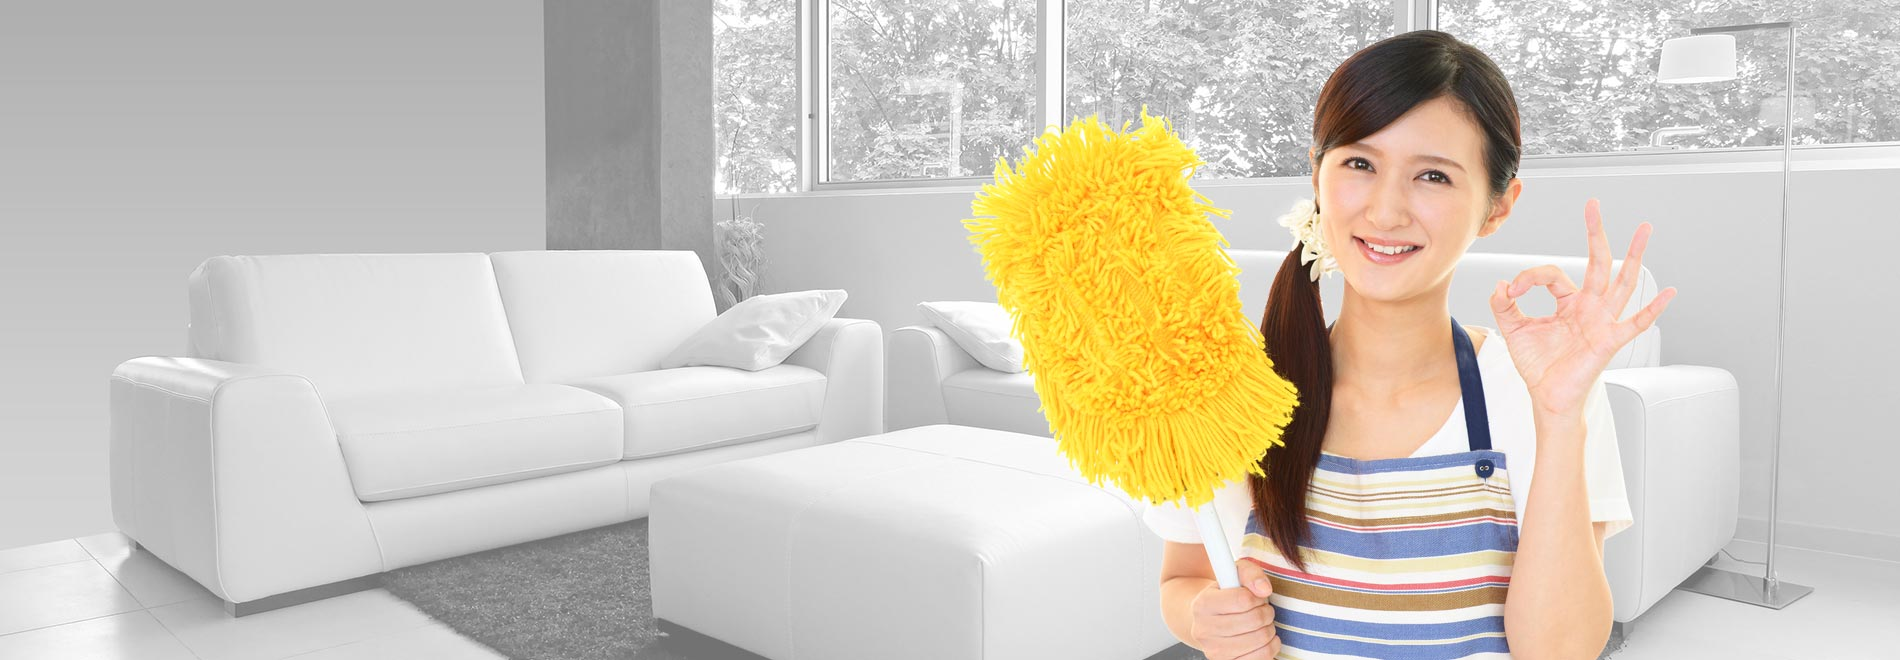 Carpet Cleaners Streatham